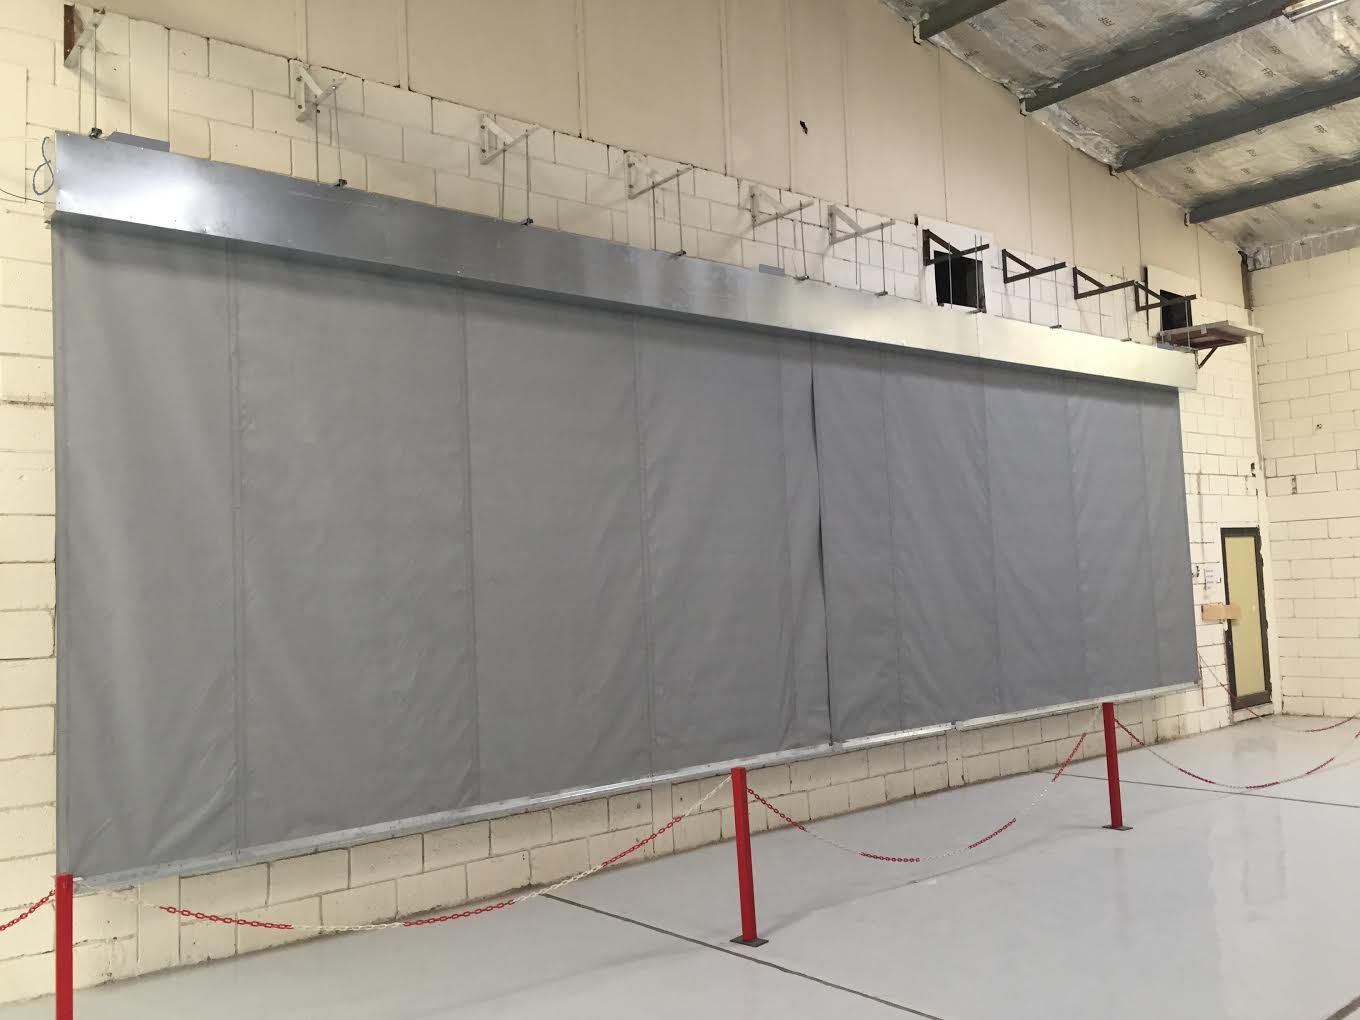 10m wide x 3m drop smoke curtain undergoing cycle testing to BS EN 12101-1:2006 Annex B